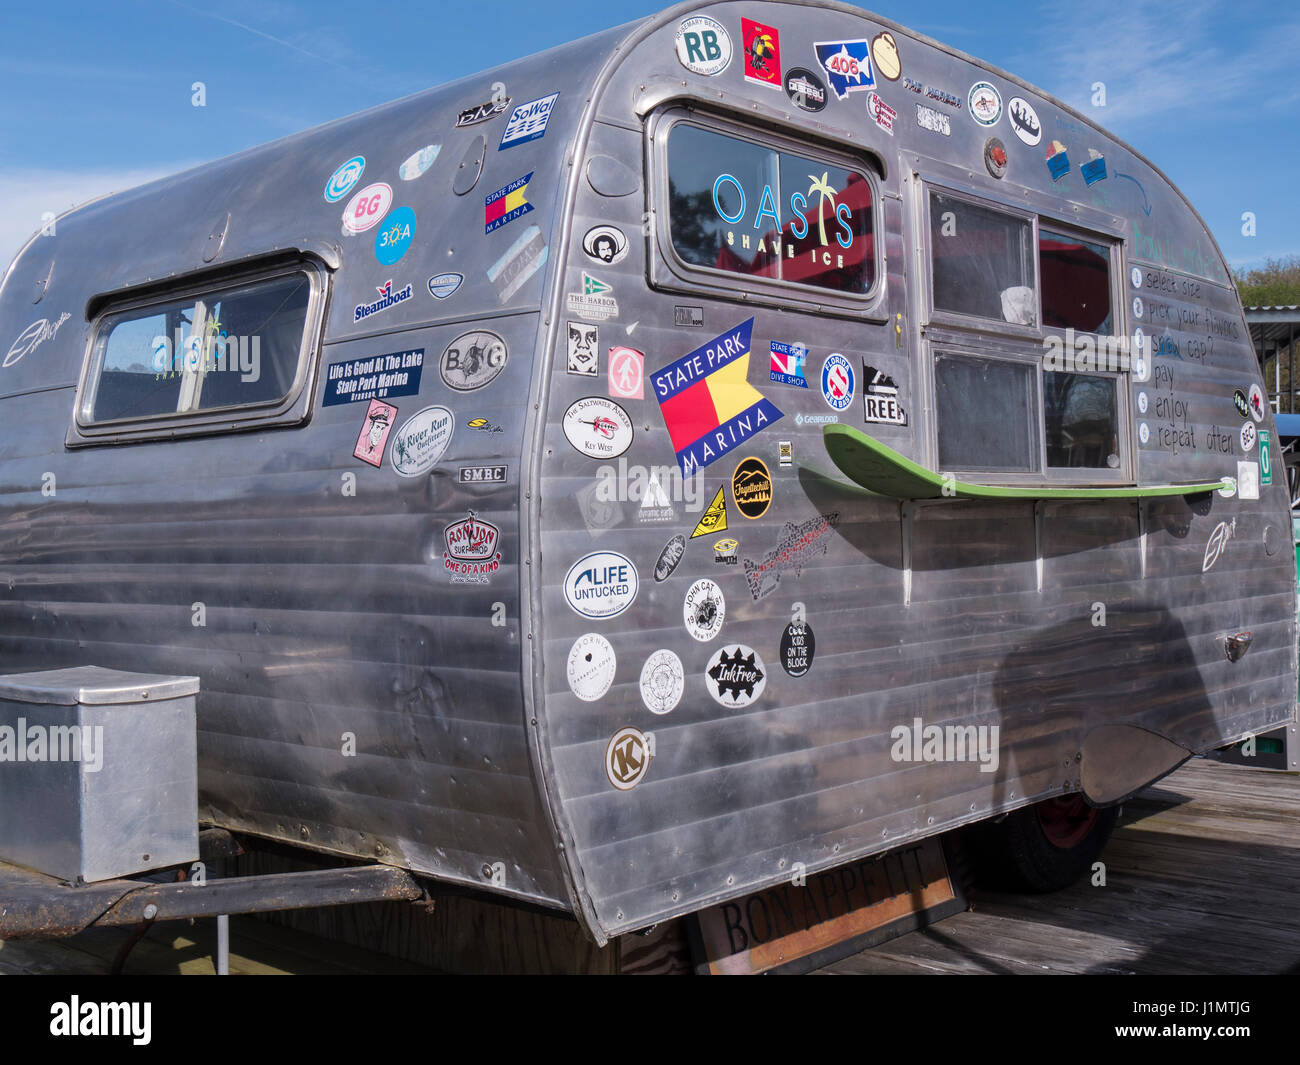 Serro scotty sportsman trailer used to sell shaved ice at the state park marina table rock state park near branson missouri